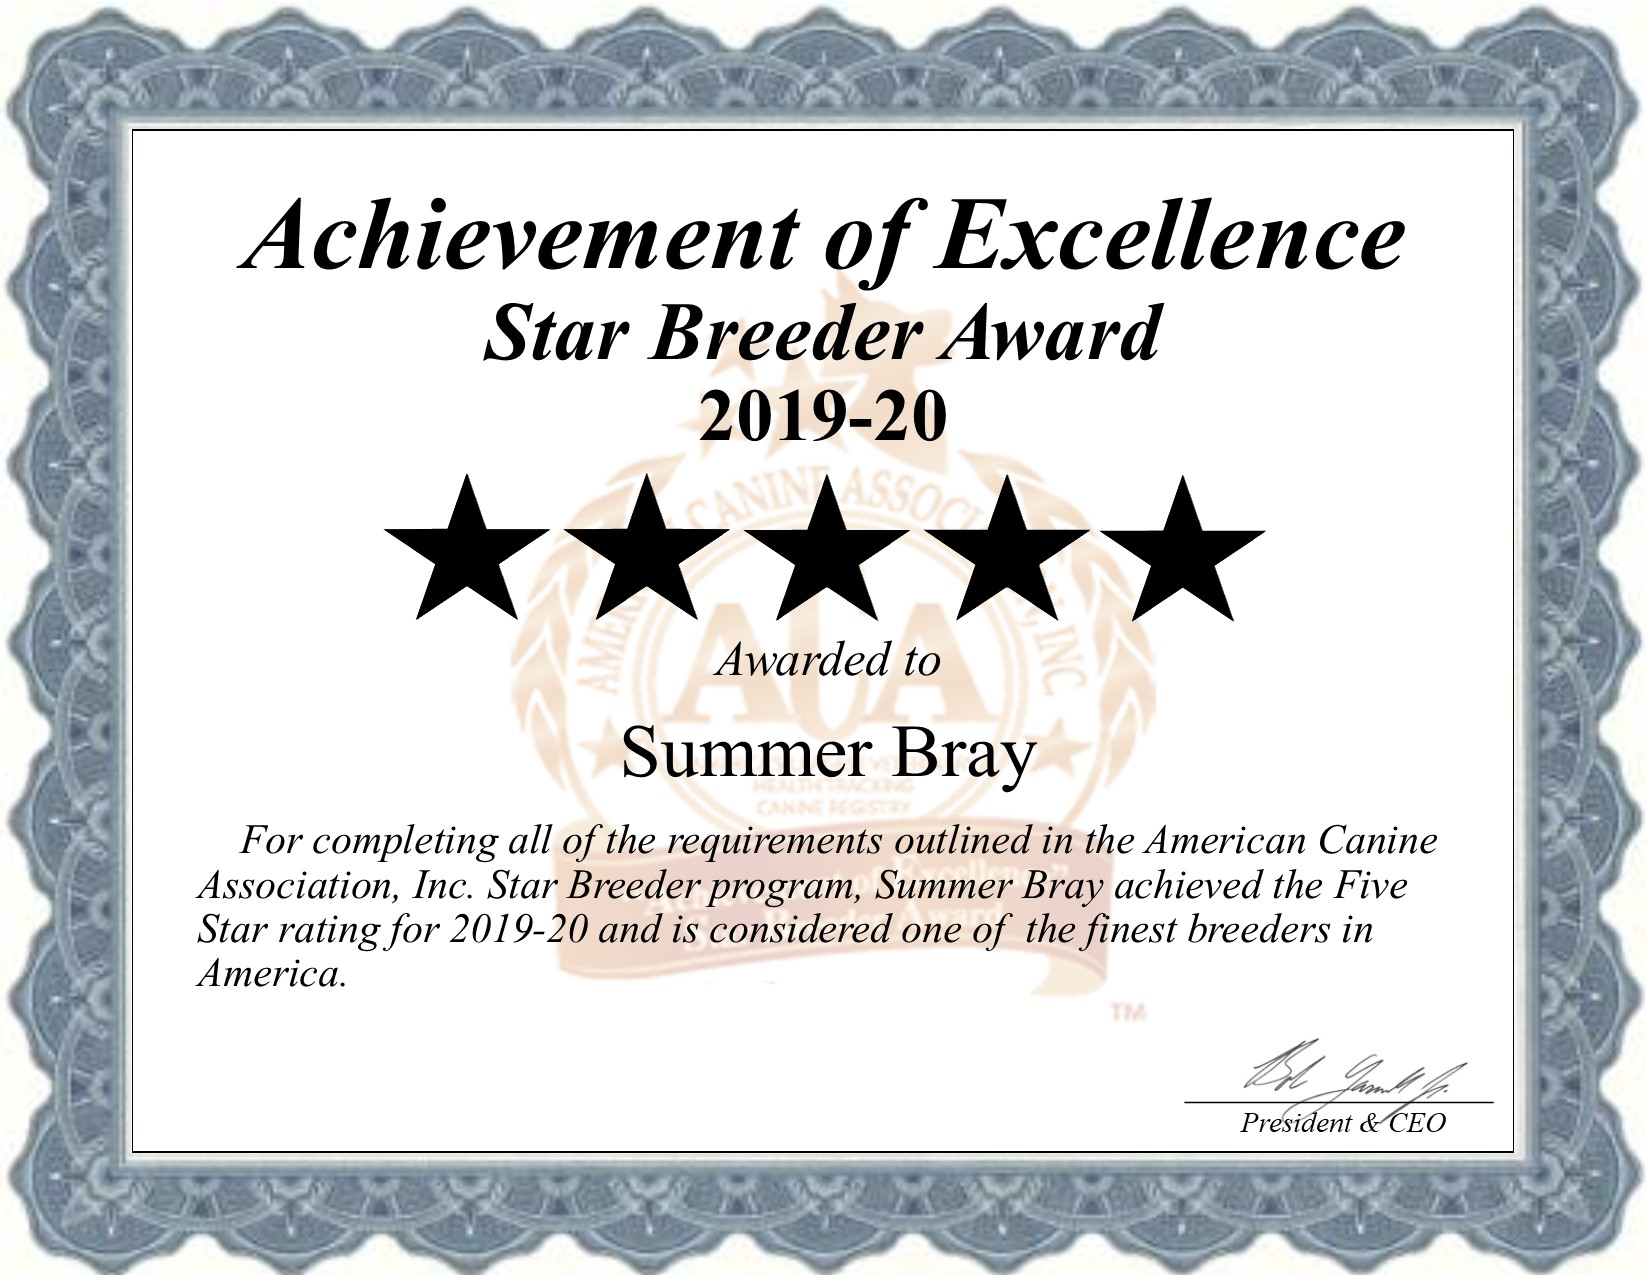 summer, bray, dog, breeder, star, certificate, summer-bray, dog-breeder, broken, bow, ok, broken-bow, oklahoma, puppy, dog, kennels, mill, puppymill, usda, 5-star, ACA, ICA, registered, show handler, goldendoodles;